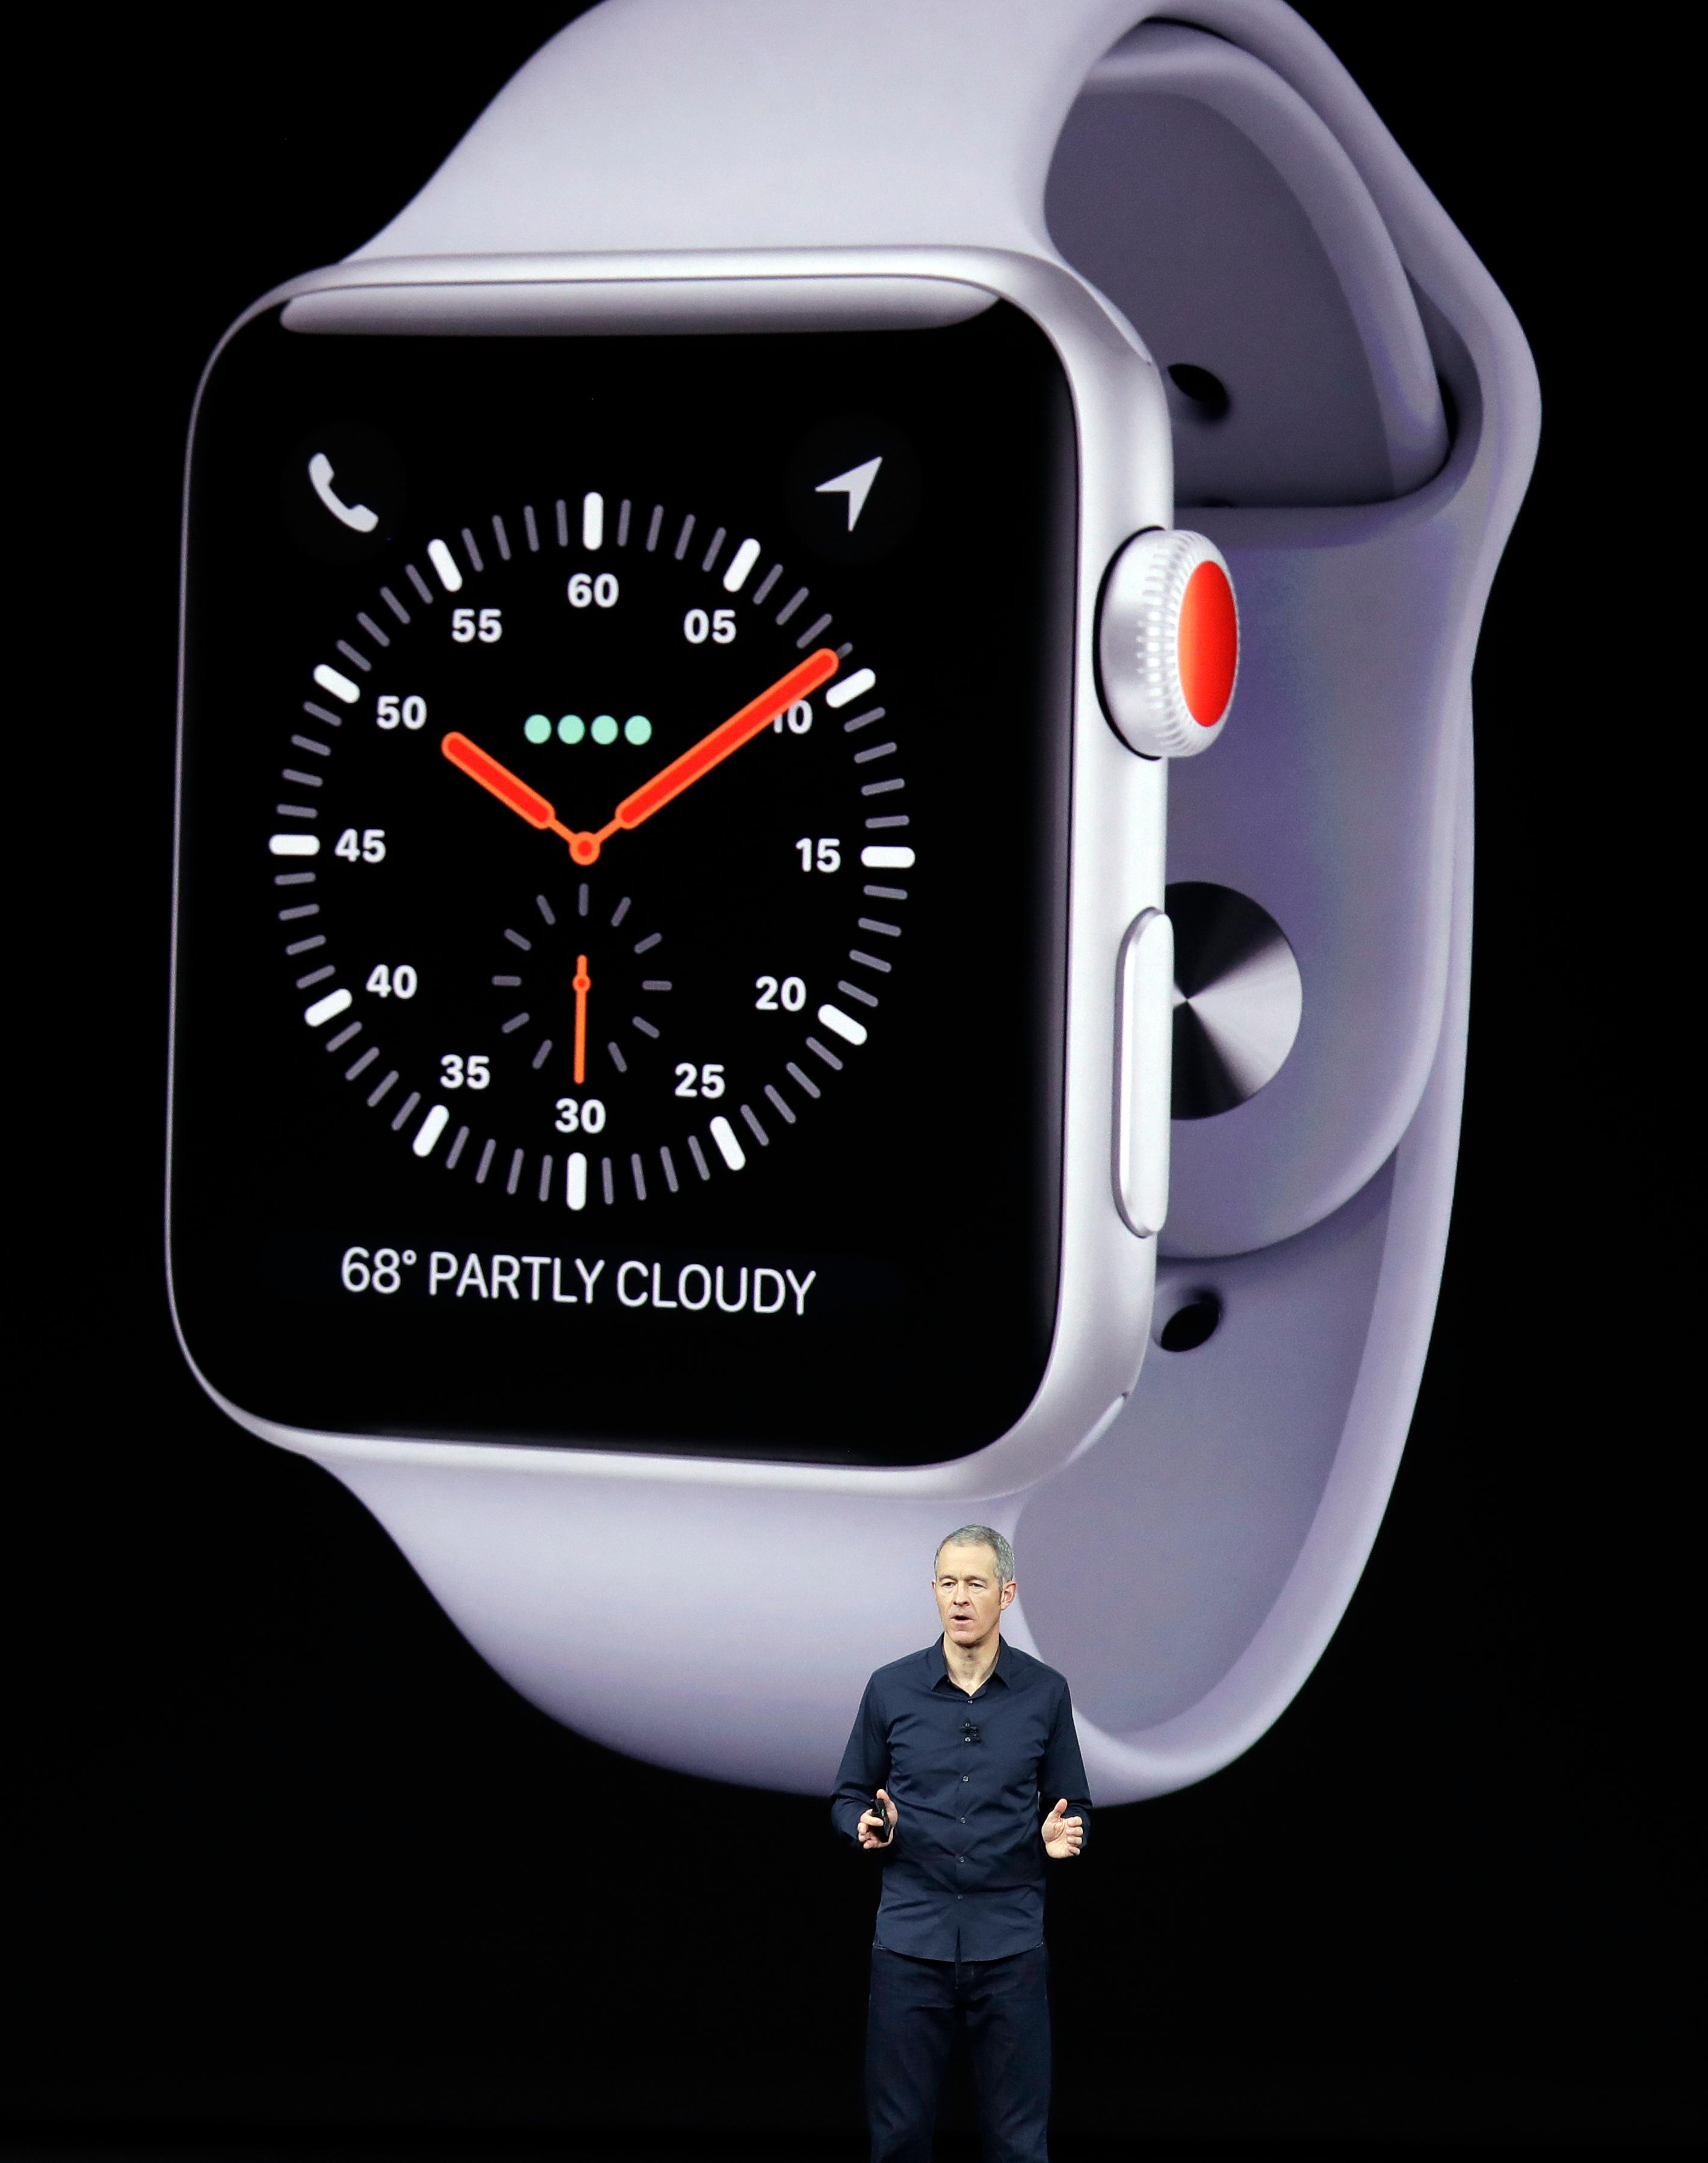 Jeff Williams, Apple's chief operating officer, shows new Apple Watch Series 3 product at the Steve Jobs Theater on the new Apple campus on Tuesday, Sept. 12, 2017, in Cupertino, Calif. (AP Photo/Marcio Jose Sanchez)